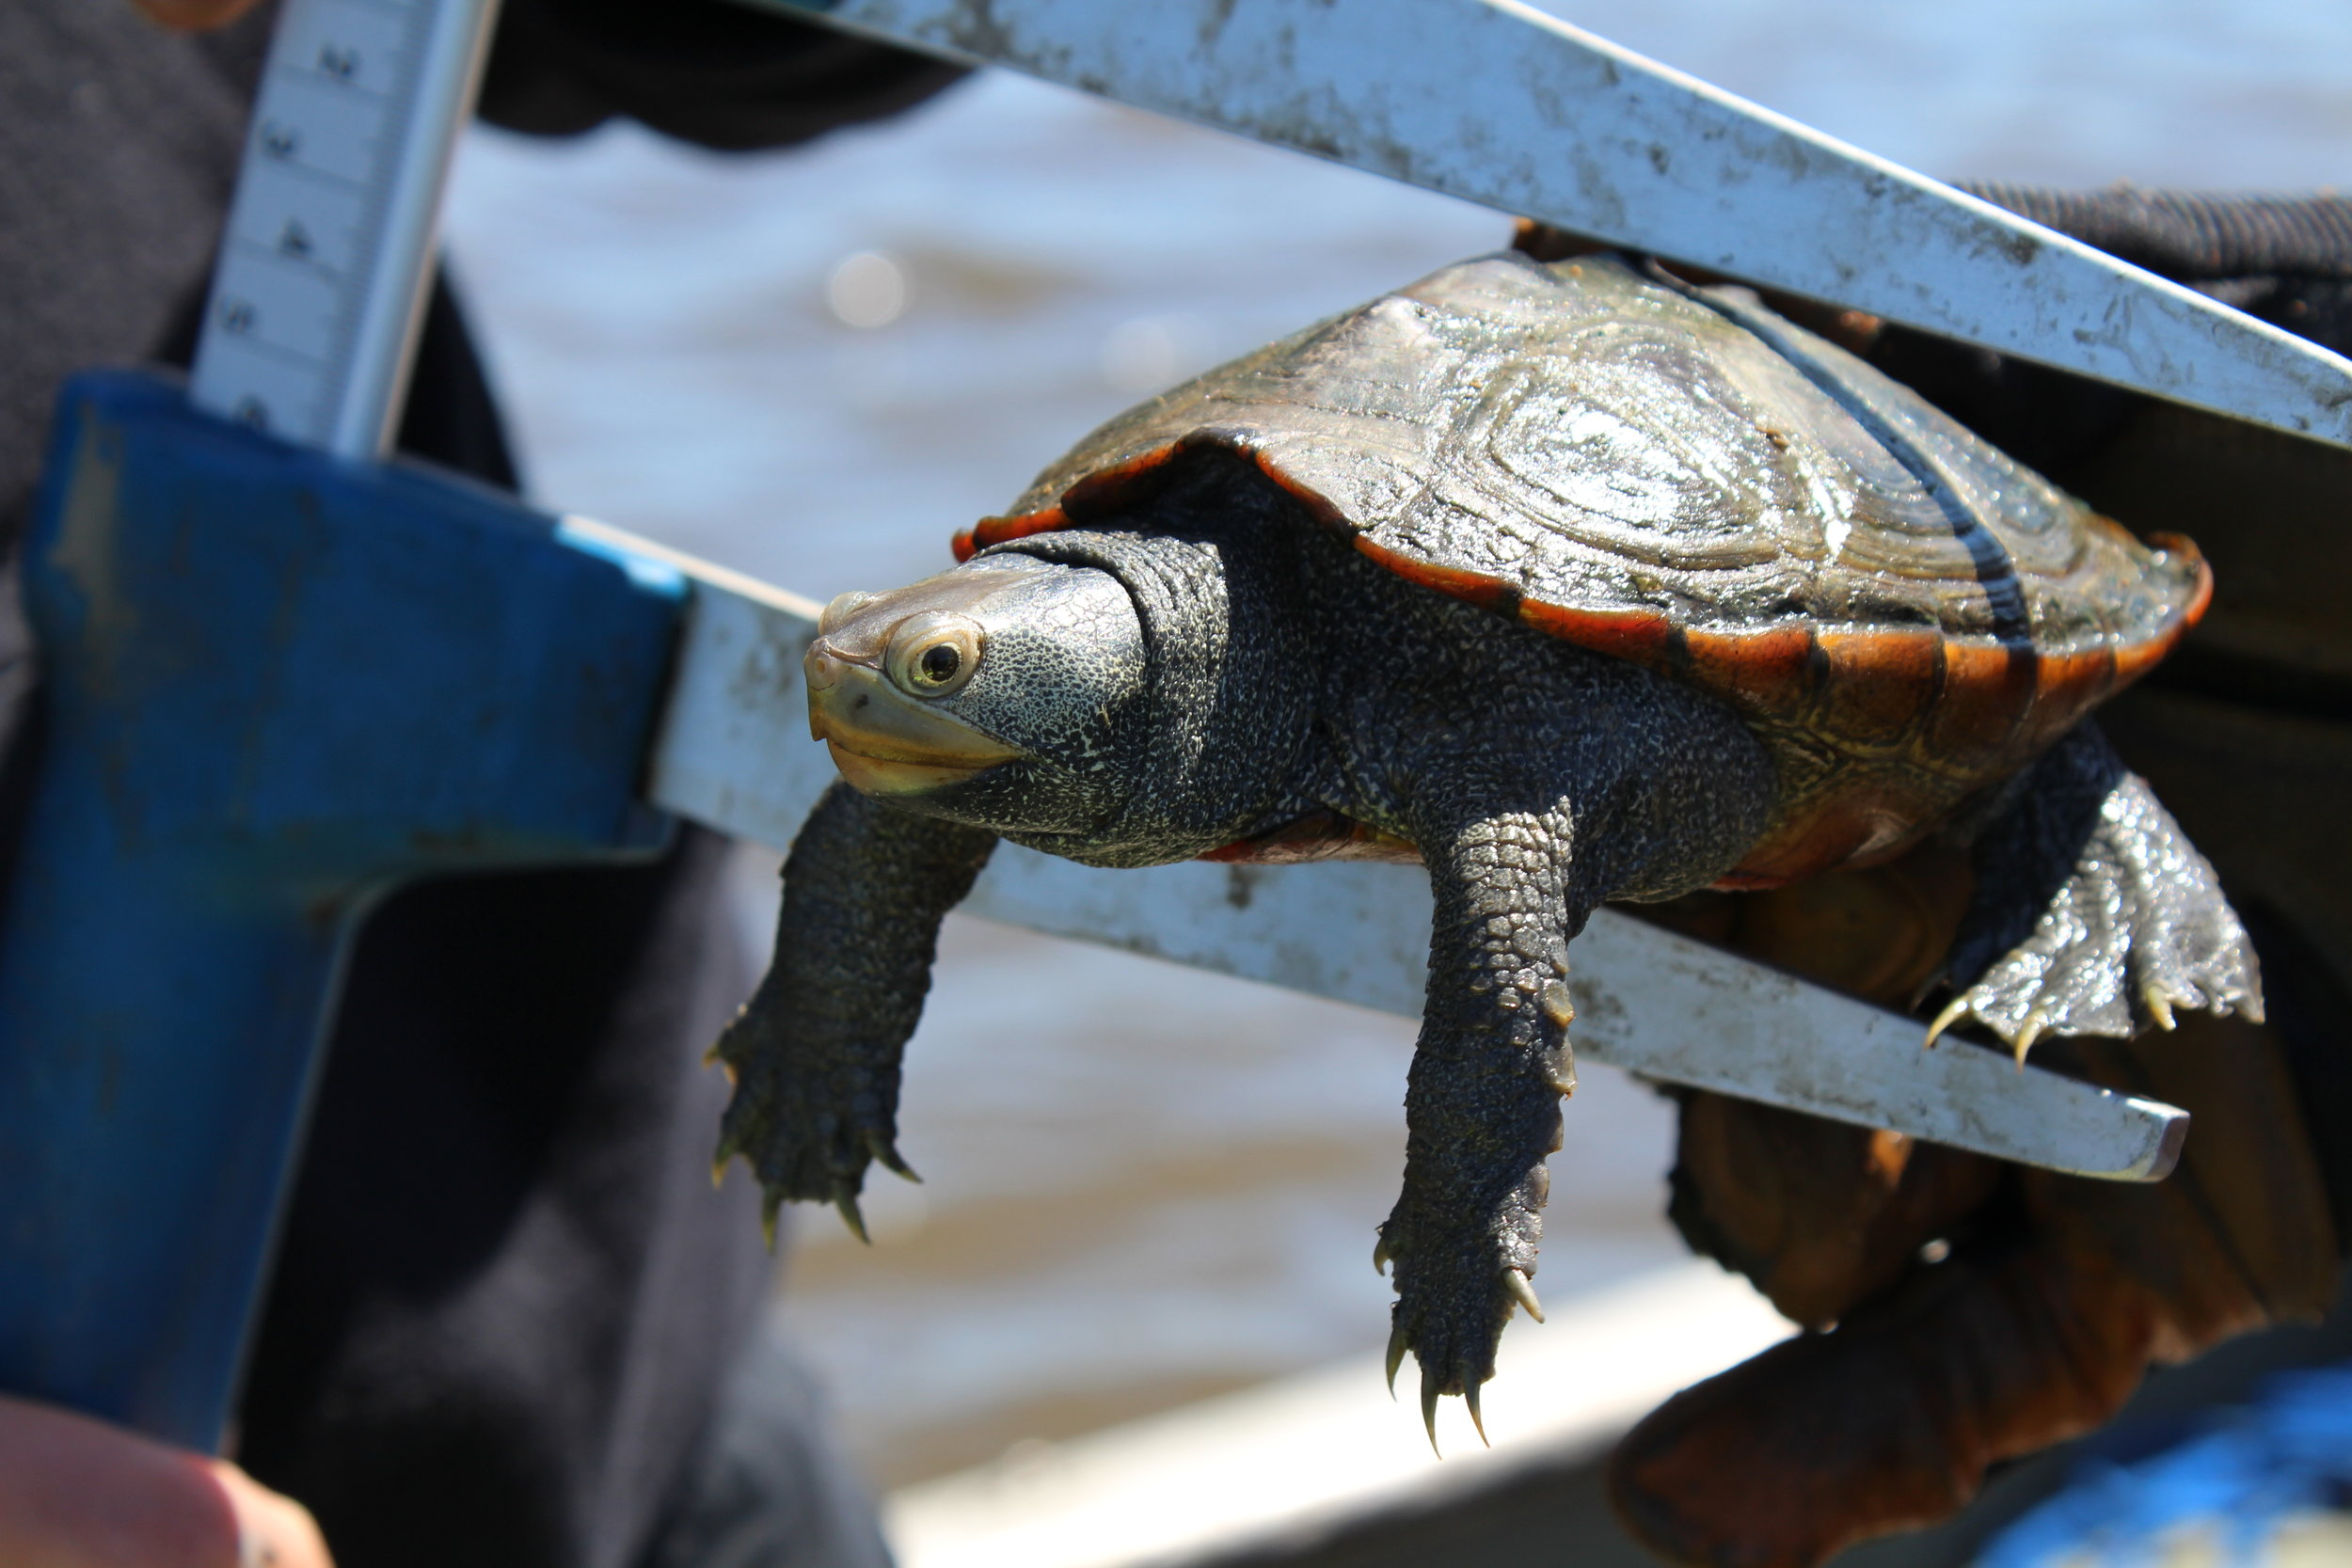 Taking measurements of nearly 1,000 diamondback terrapins allowed the SCDNR team to model how different bycatch reduction devices would work in Charleston. (Photo: E. Weeks/SCDNR)